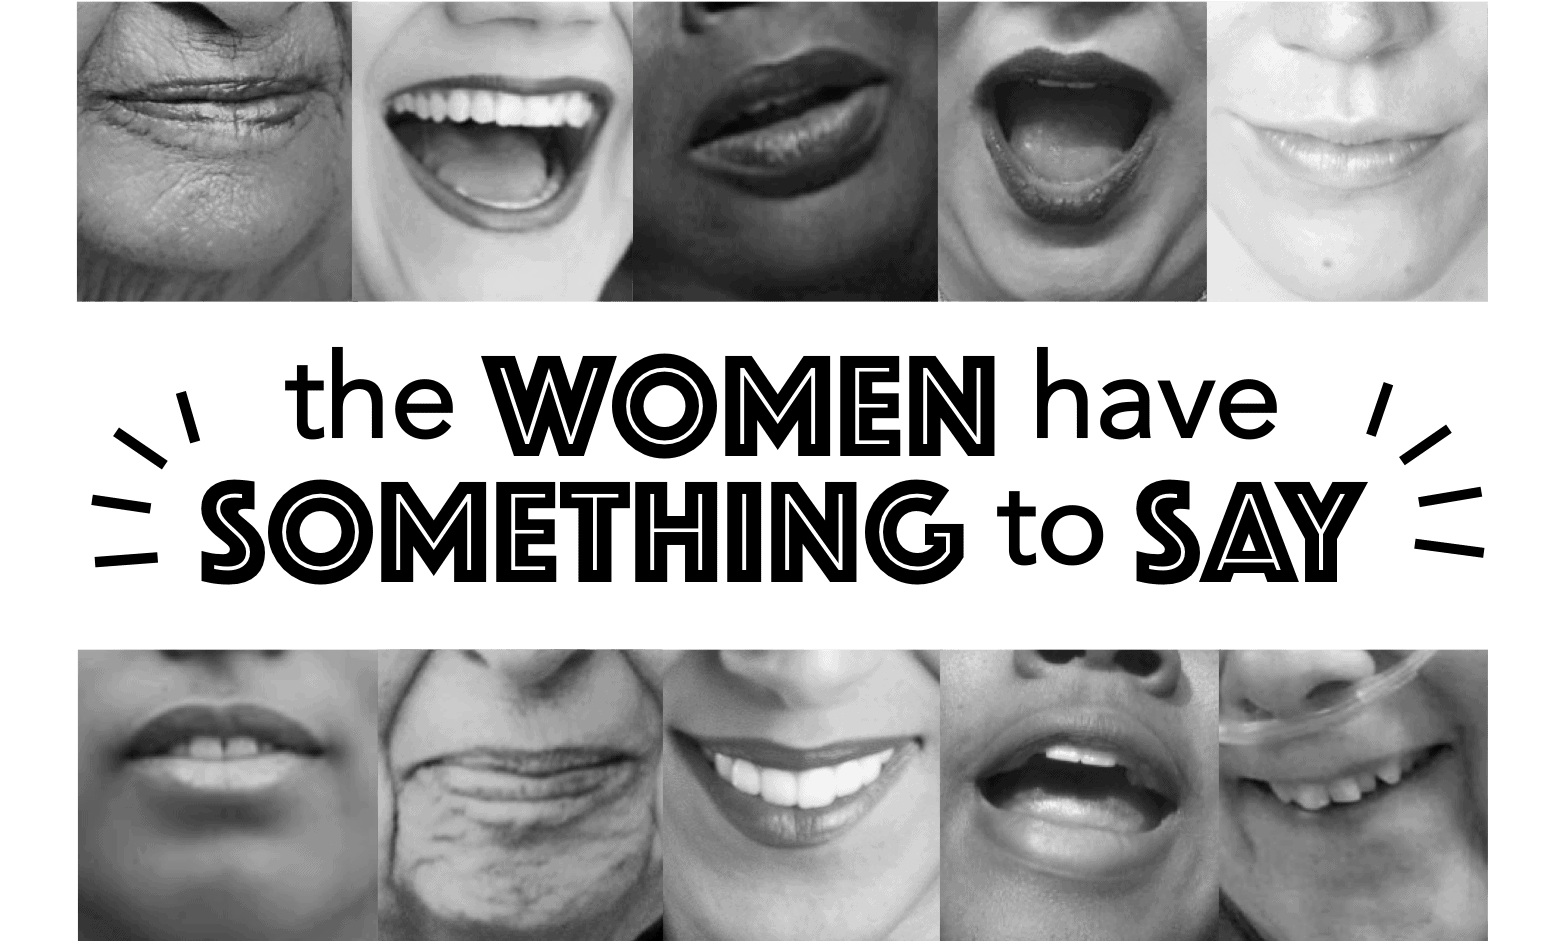 The Women Have Something To Say